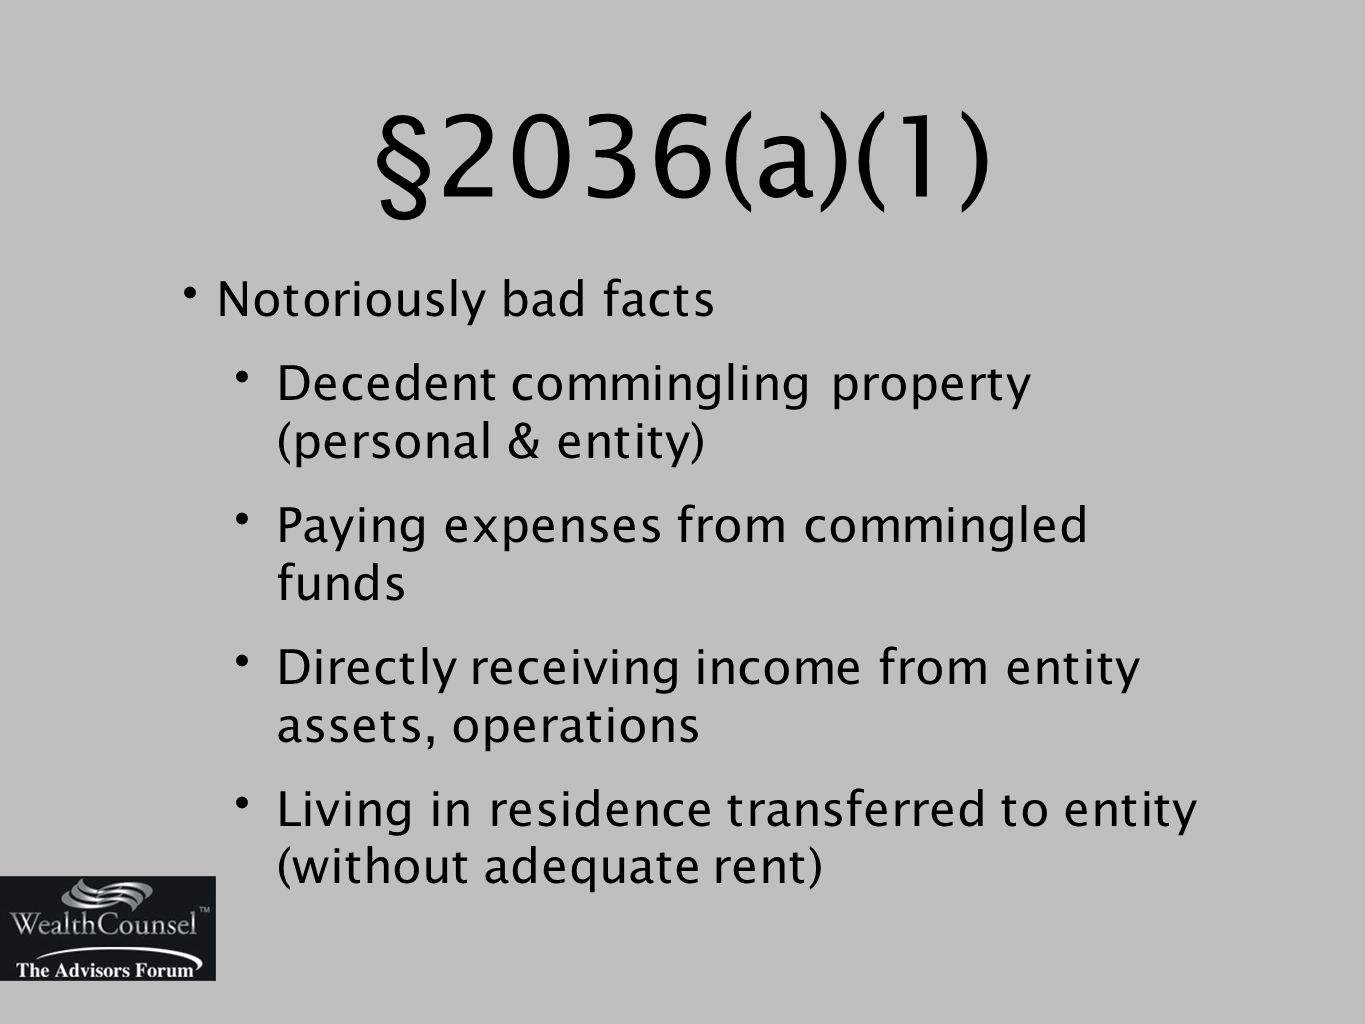 §2036(a)(1) Notoriously bad facts Decedent commingling property (personal & entity) Paying expenses from commingled funds Directly receiving income from entity assets, operations Living in residence transferred to entity (without adequate rent)